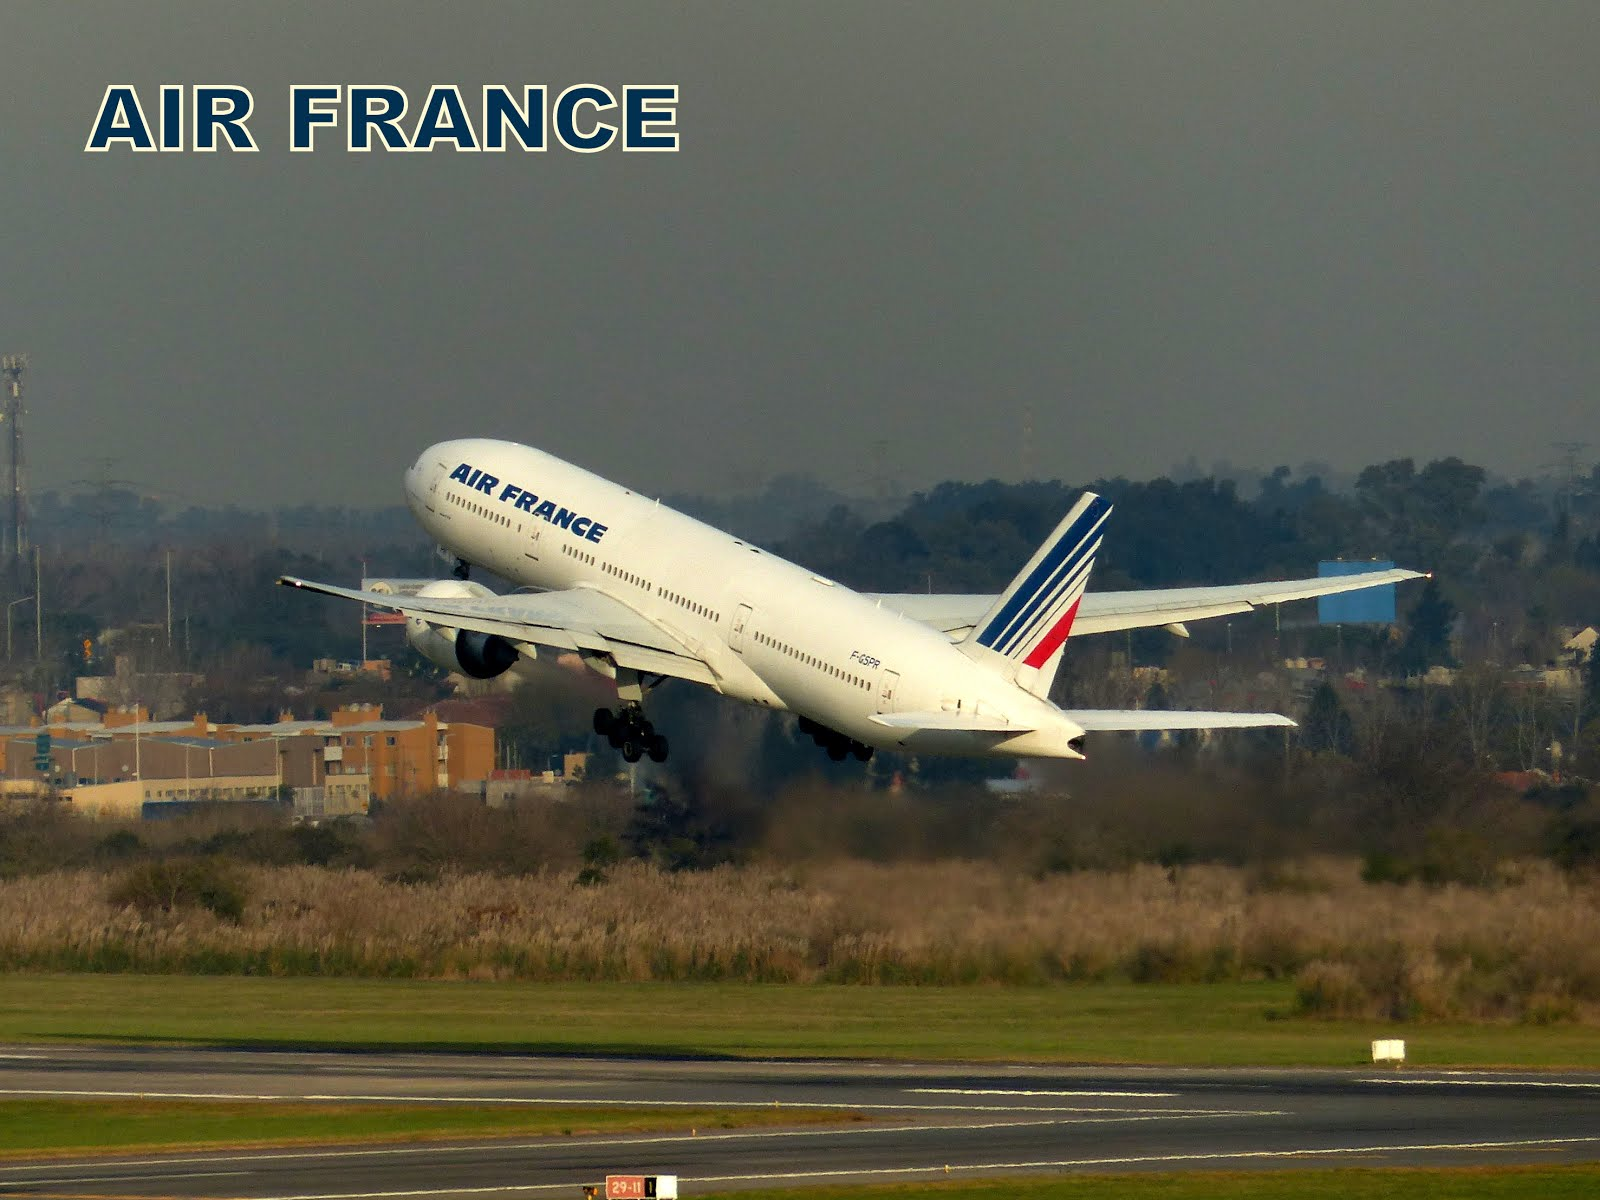 AIR FRANCE en Ezeiza